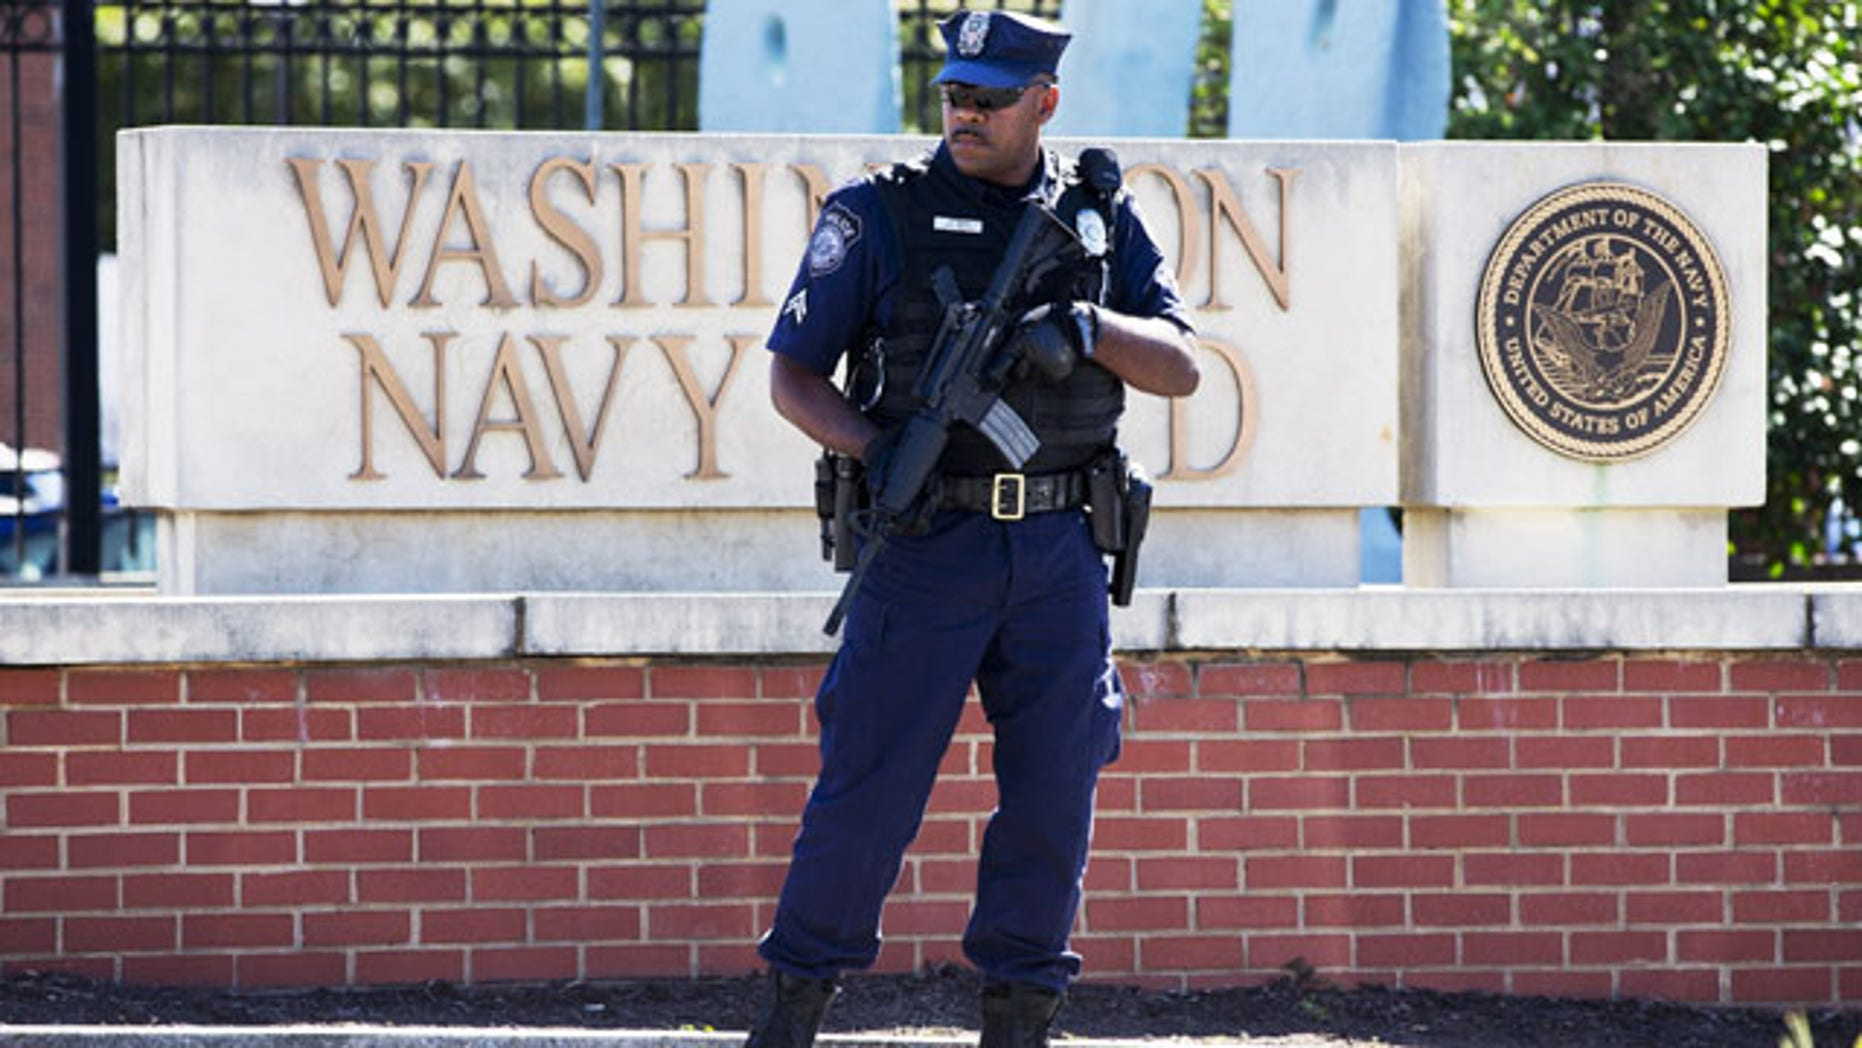 September 17, 2013: An armed officer who said he is with the Defense Department, standing near guard the gate at the Washington Navy Yard the day after a gunman launched an attack inside the Yard. An independent review triggered by the Washington Navy Yard killings last year says threats to Defense Department personnel and facilities increasingly are coming from within. It says the department must rethink its outdated security theory that suggests defending the perimeters can keep threats away. Instead, it says that terrorism, espionage and even physical threats are coming from trusted insiders. (AP Photo/Jacquelyn Martin, File)